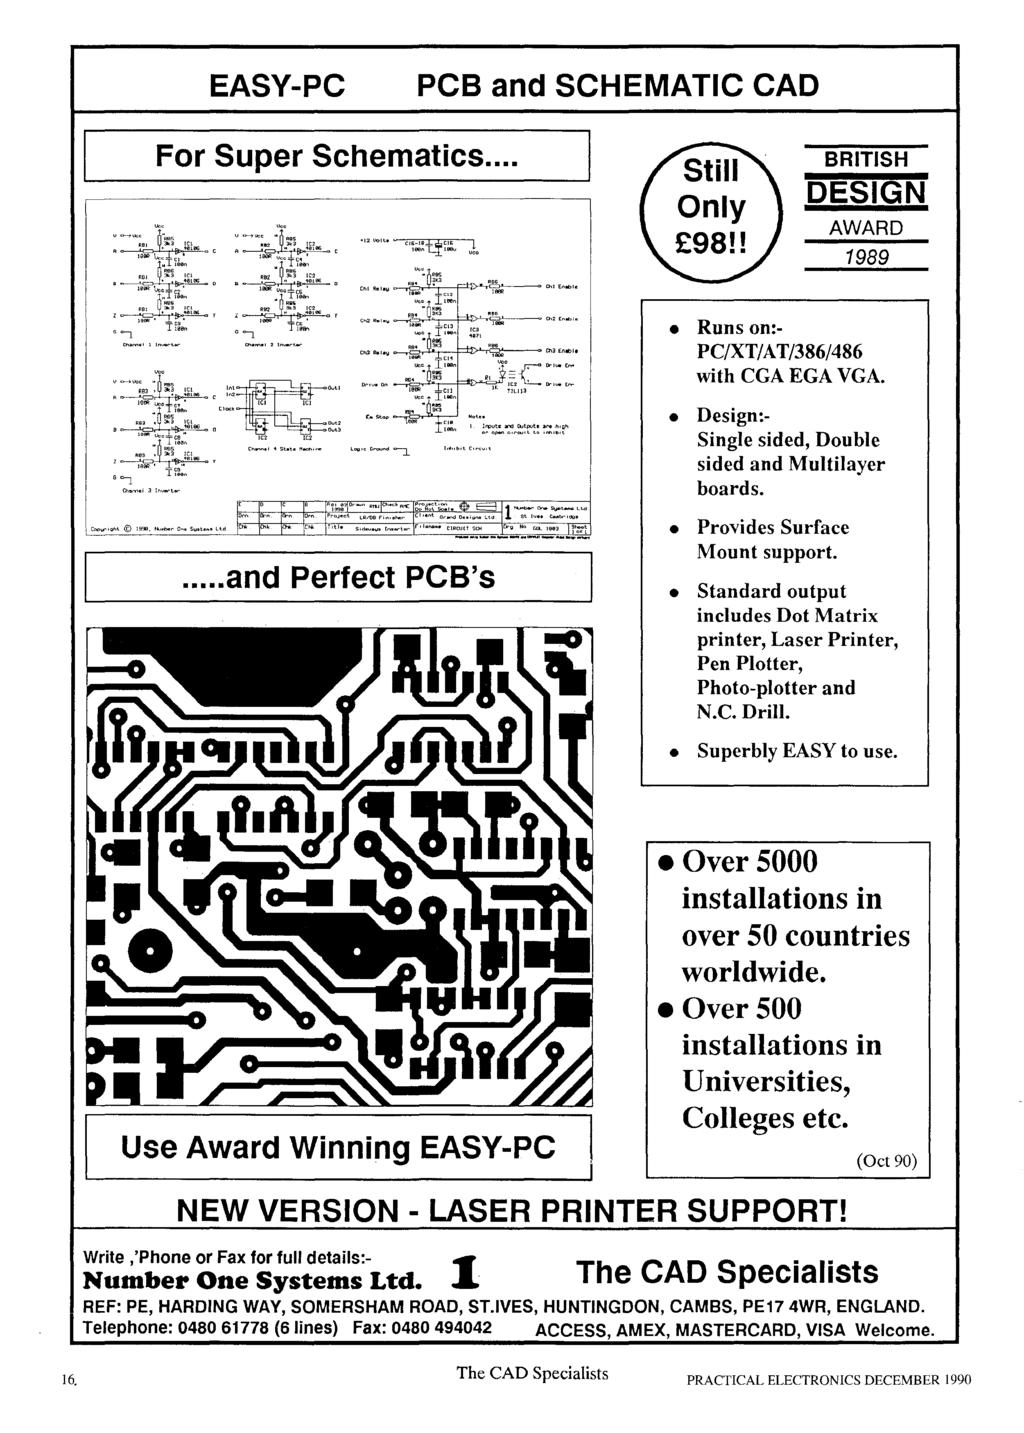 Micronta Accurate Every Time Pdf Pcb Printed Circuit Board For Les Paul Guitar Penny Buy Easy Pc And Schematc Cad Super Schematics Brtsh Desgn Award